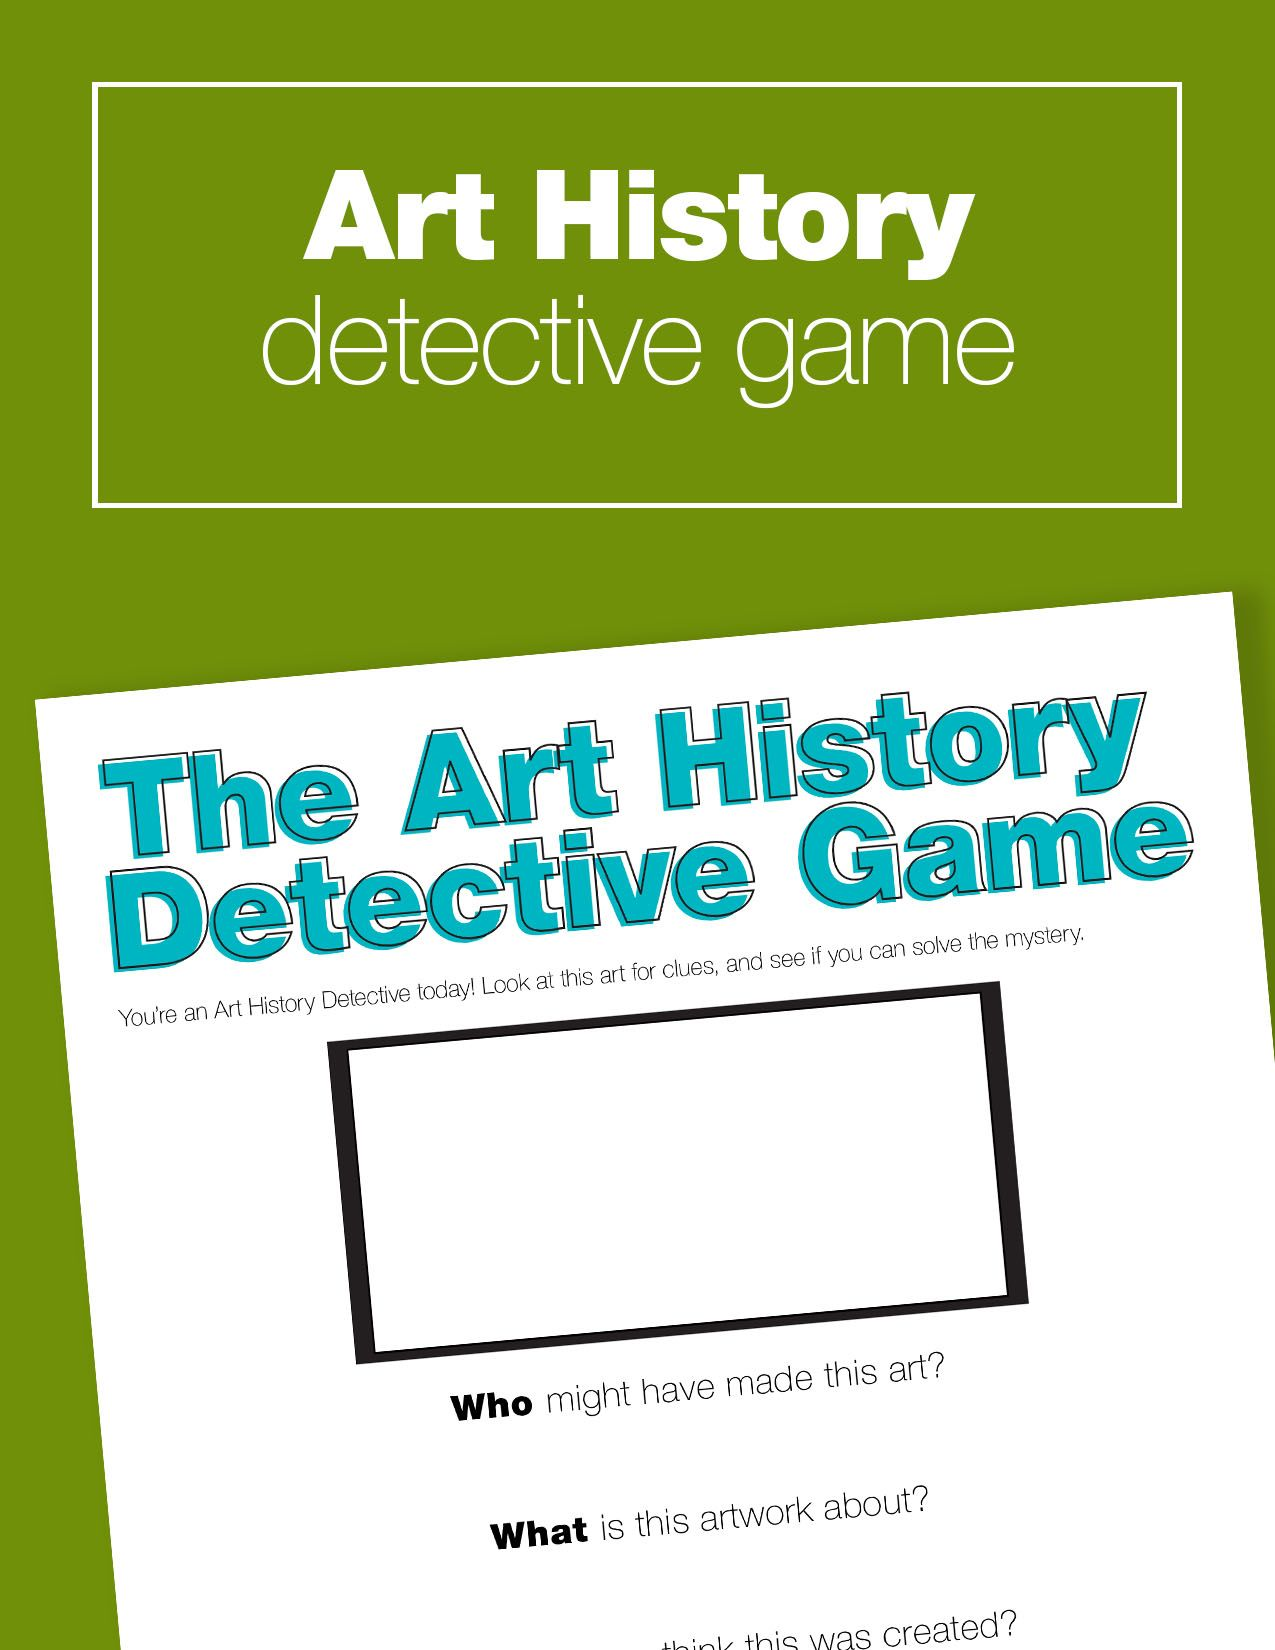 How To Play The Art History Detective Game | Art history, Gaming and ...